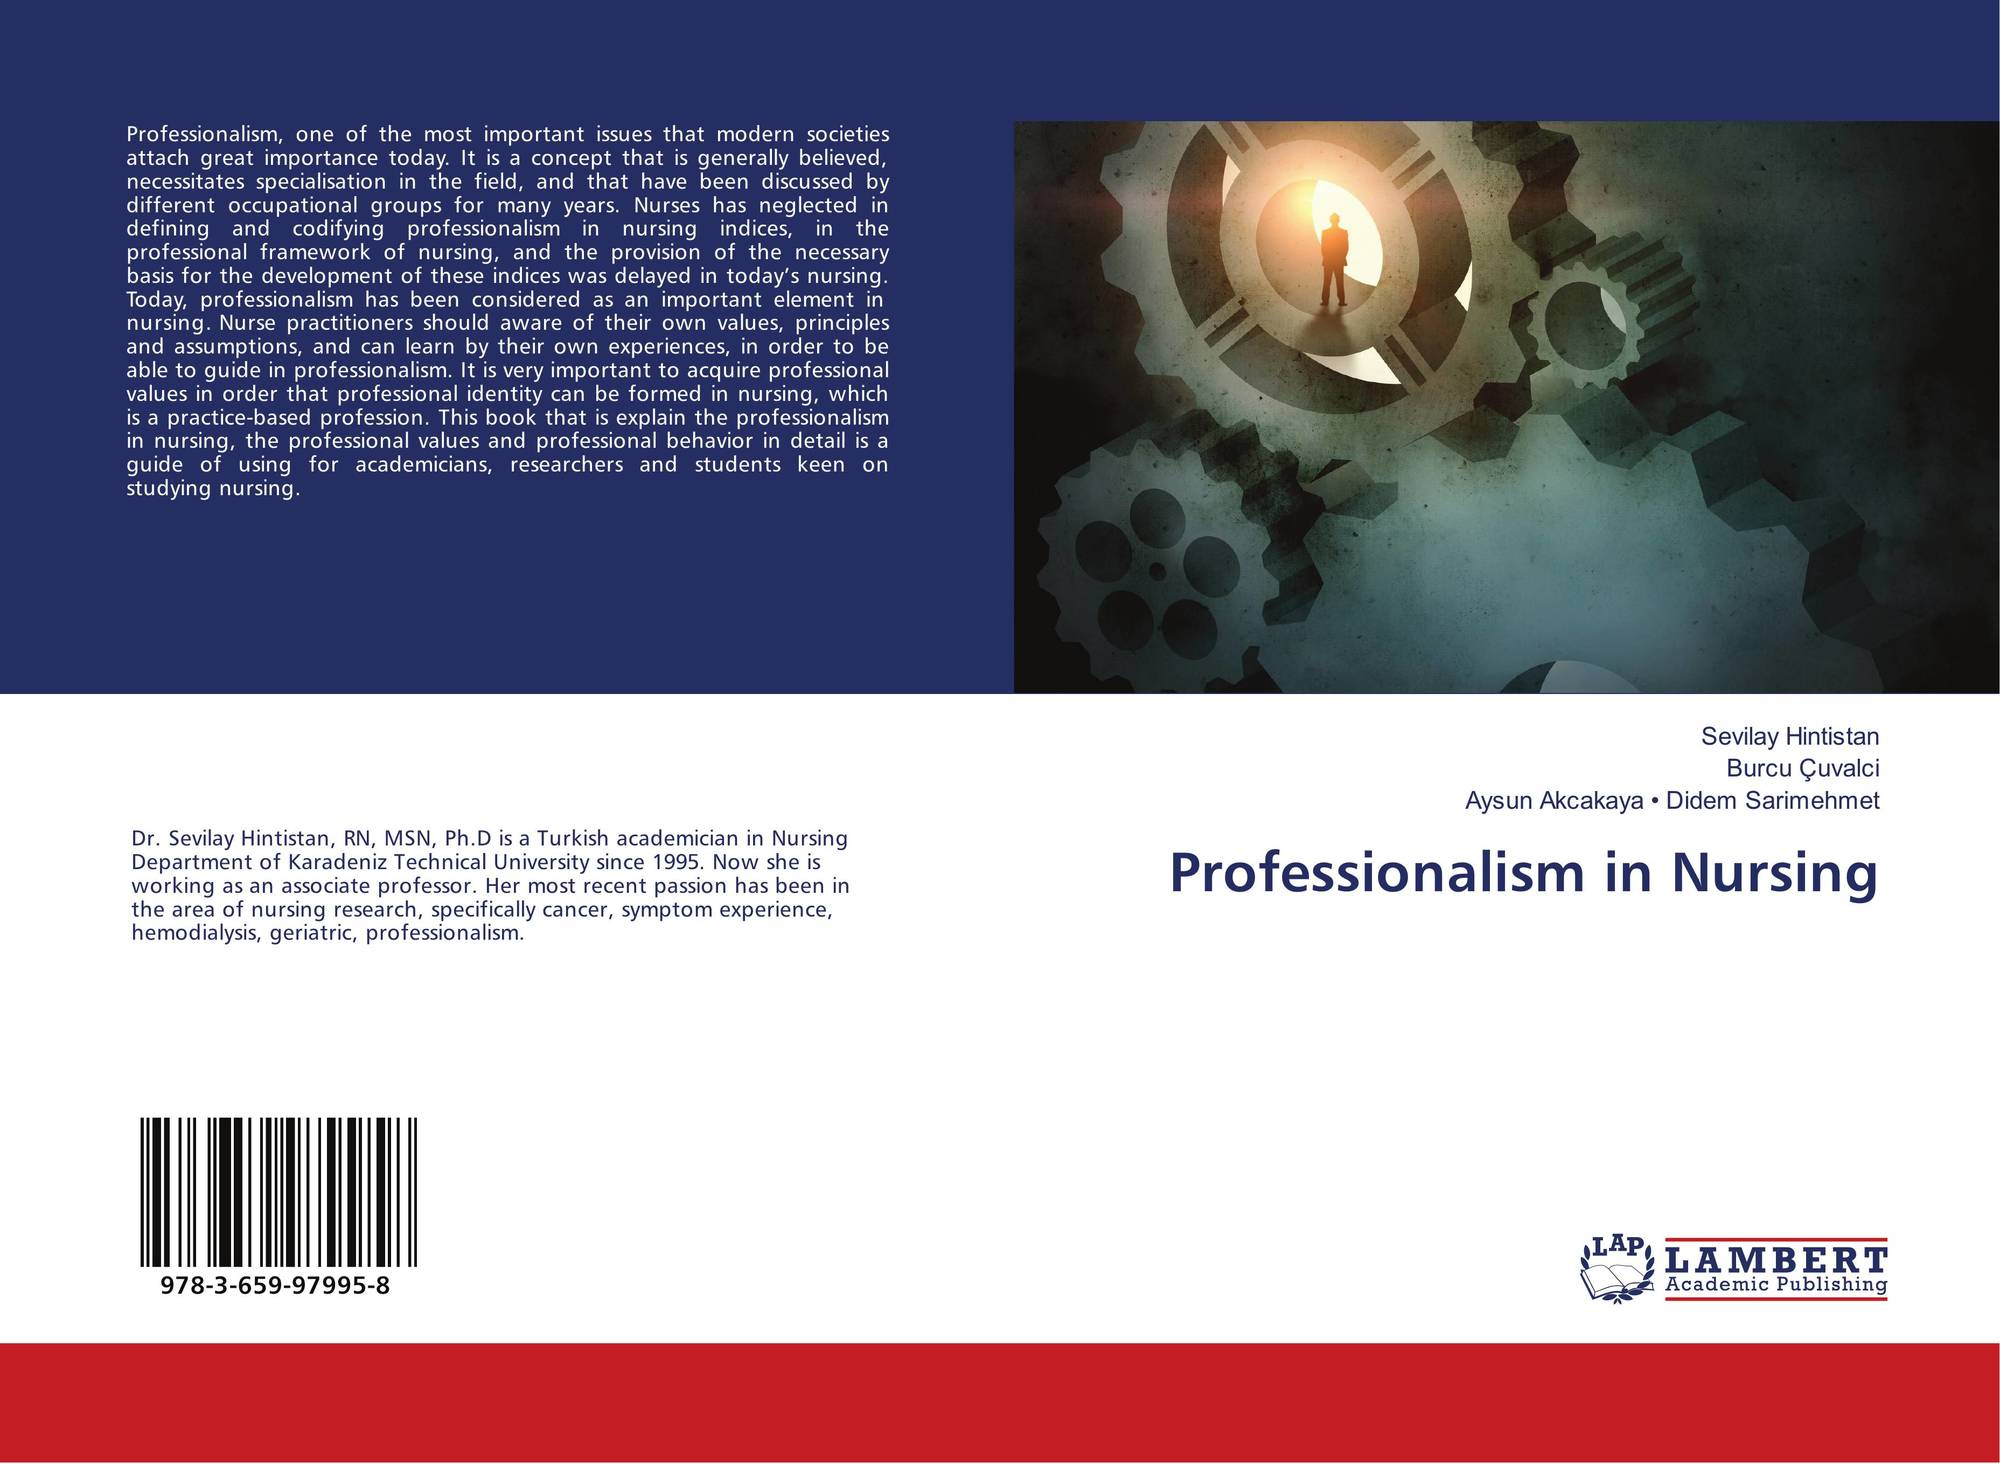 the most important issues in the nursing Important issues facing the profession of nursing today 1561 words | 6 pages the most important issues in the profession of nursing today introduction in the medical fraternity, nurses make up the largest healthcare profession.